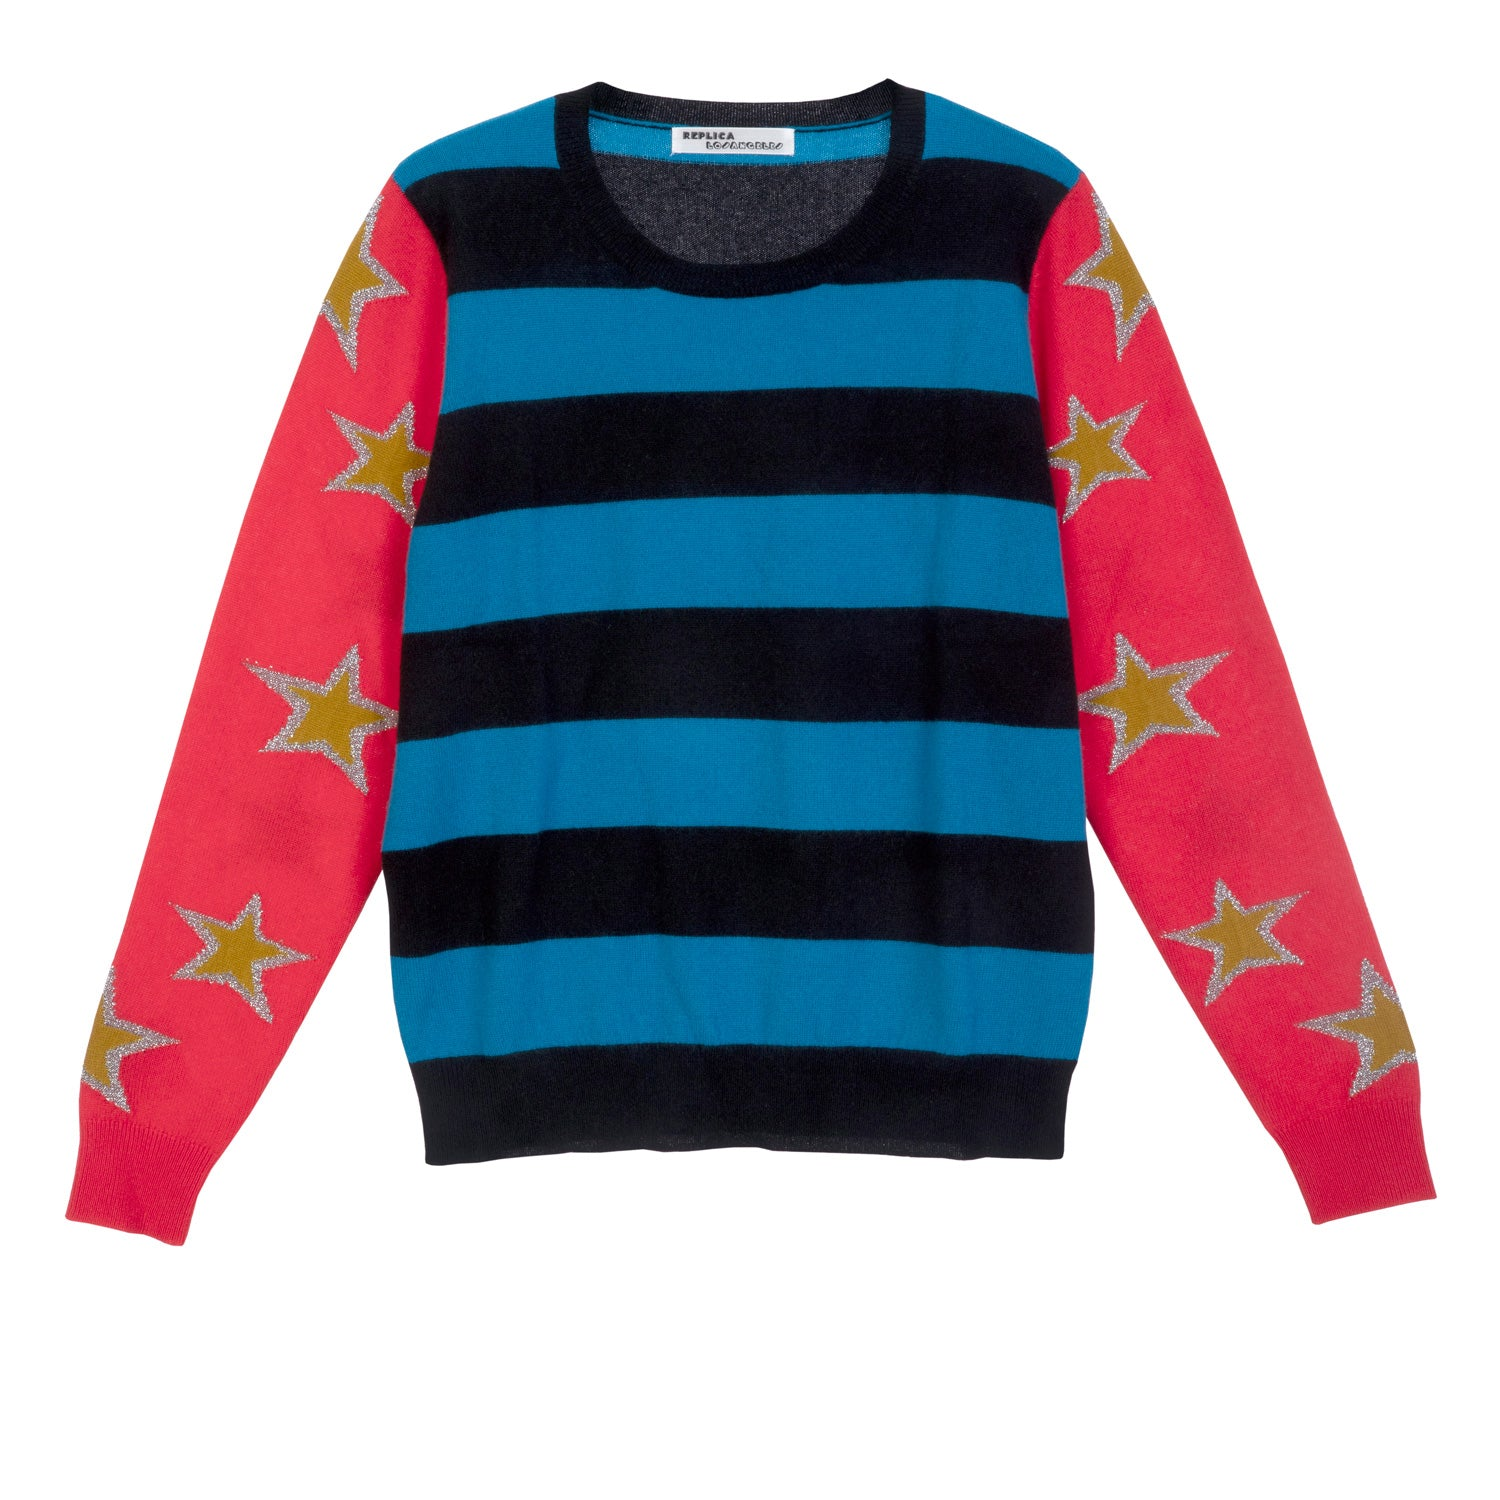 Cashmere and Lurex Striped Sweatshirt with Stars on Sleeves